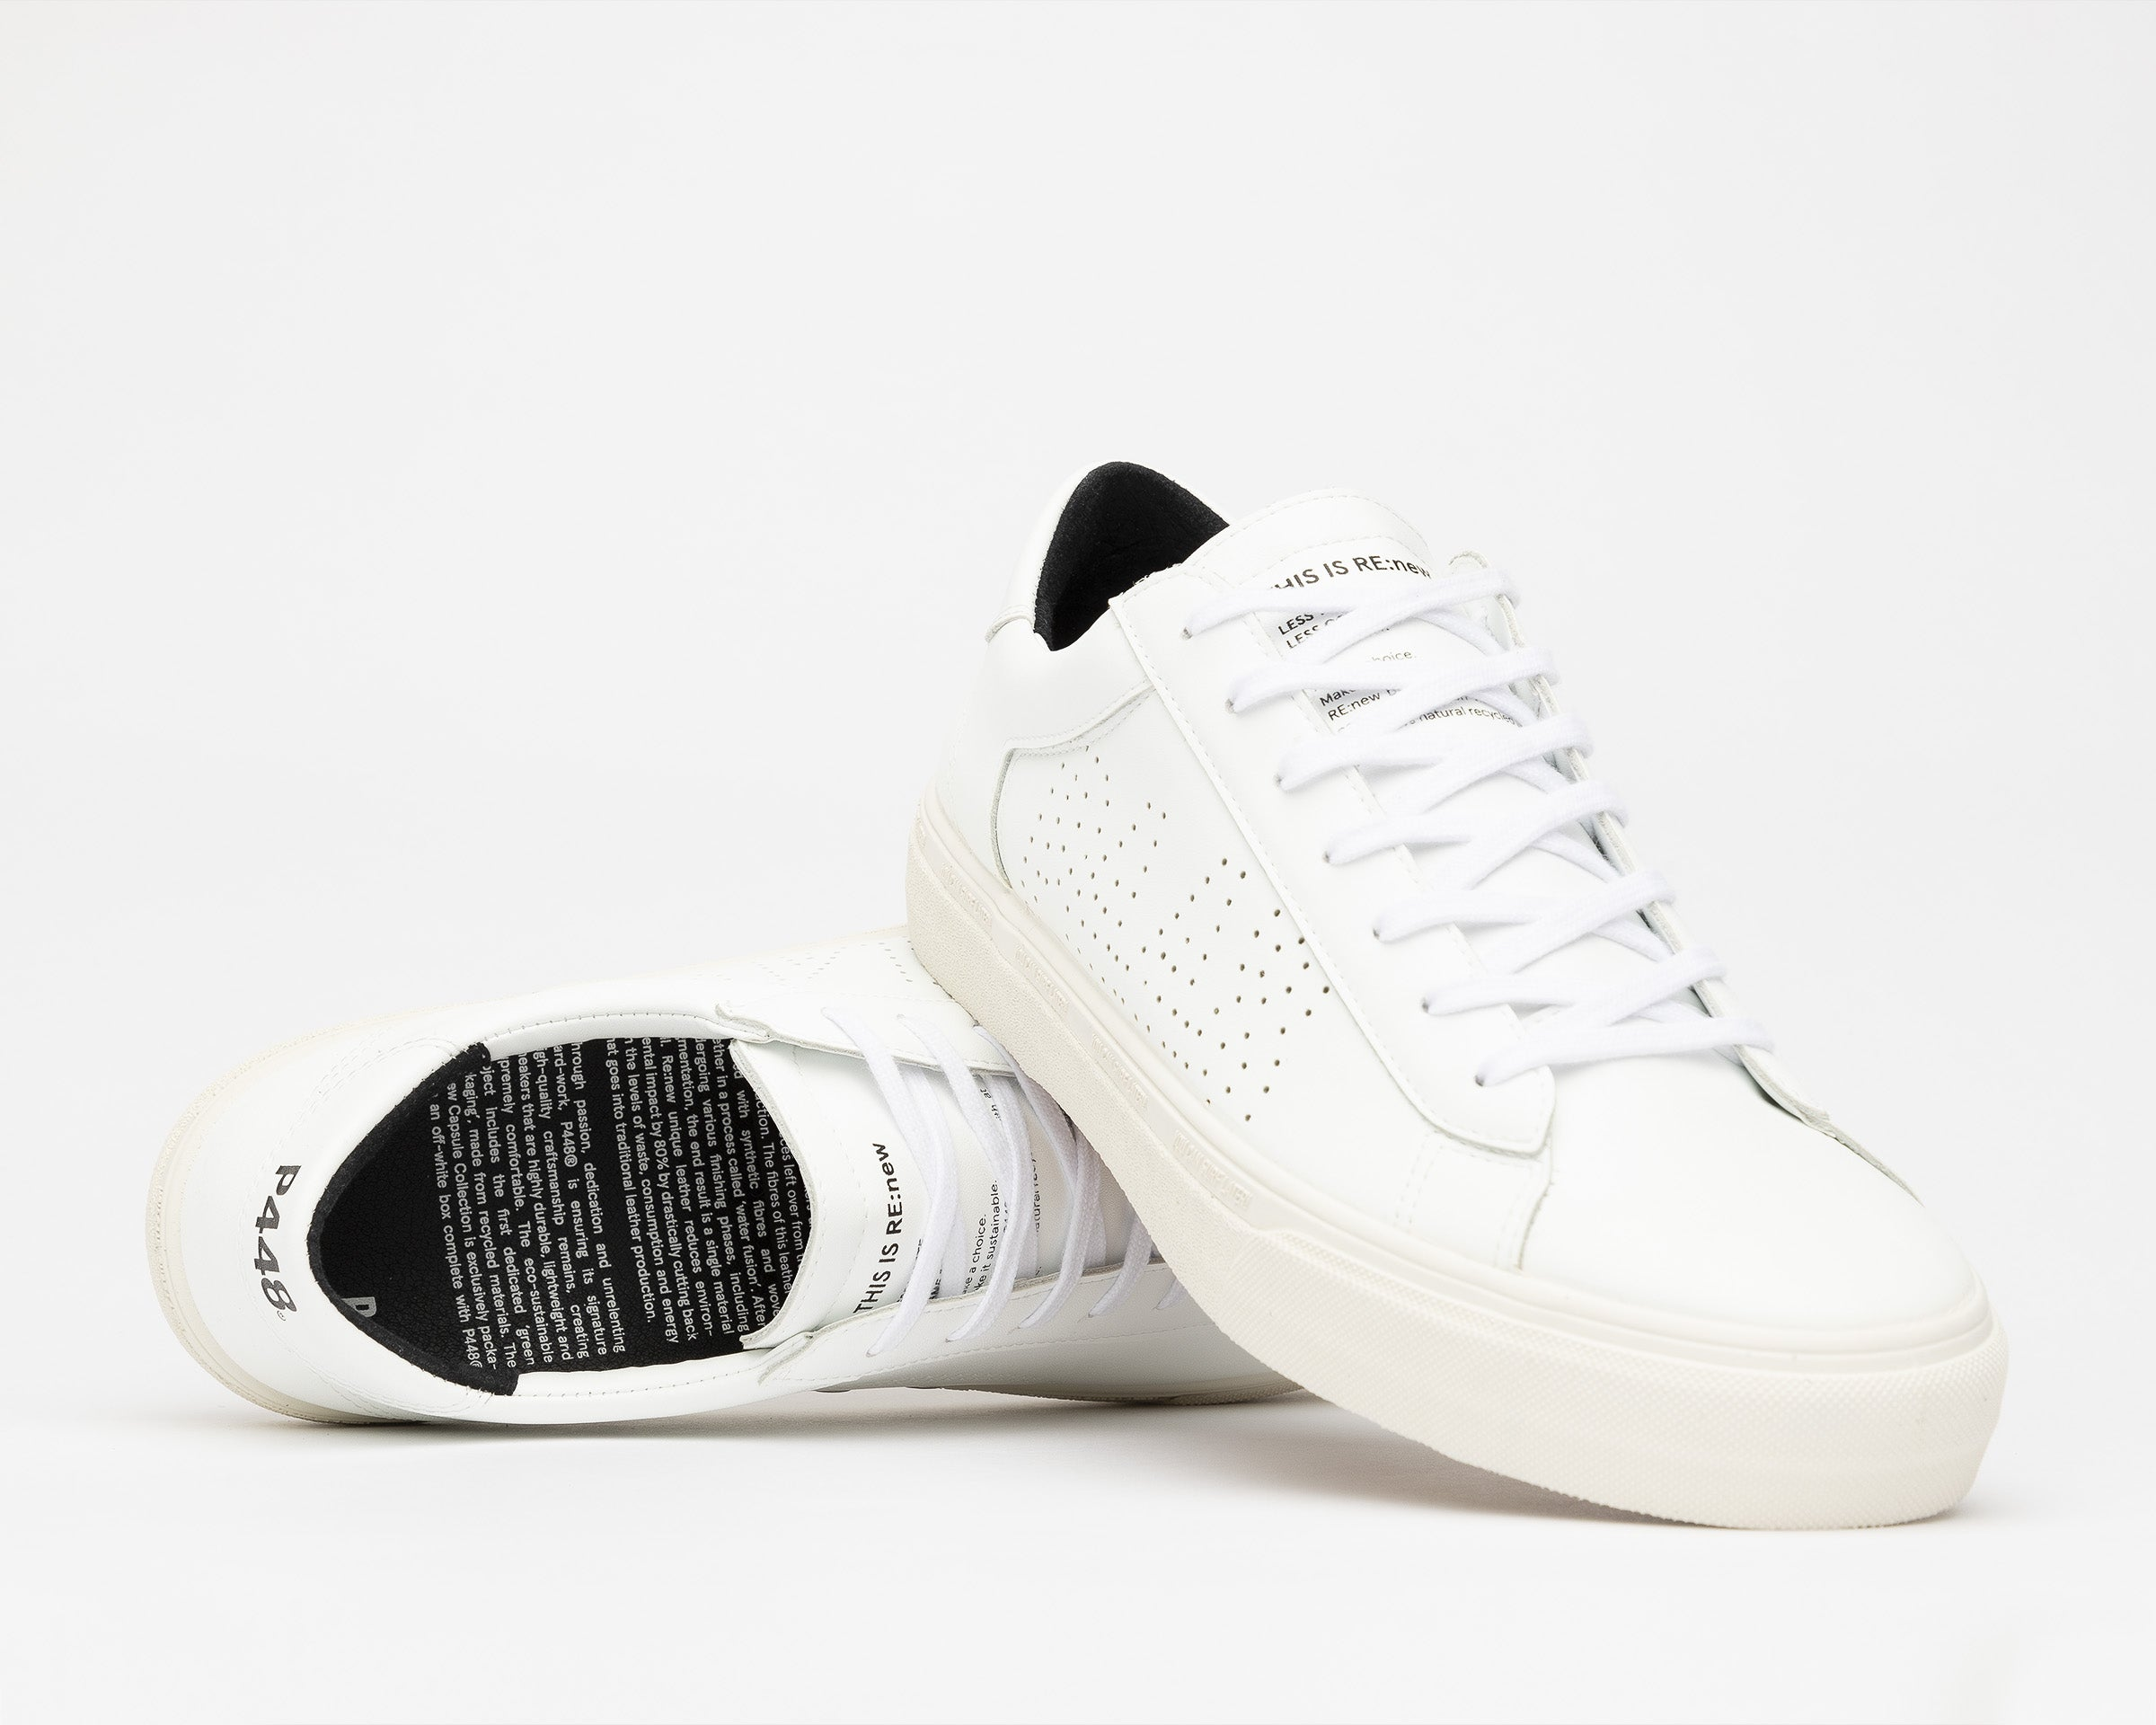 Y.C.S.L. Low-Top Volcanized Sneaker in WhiteR - Detail 1